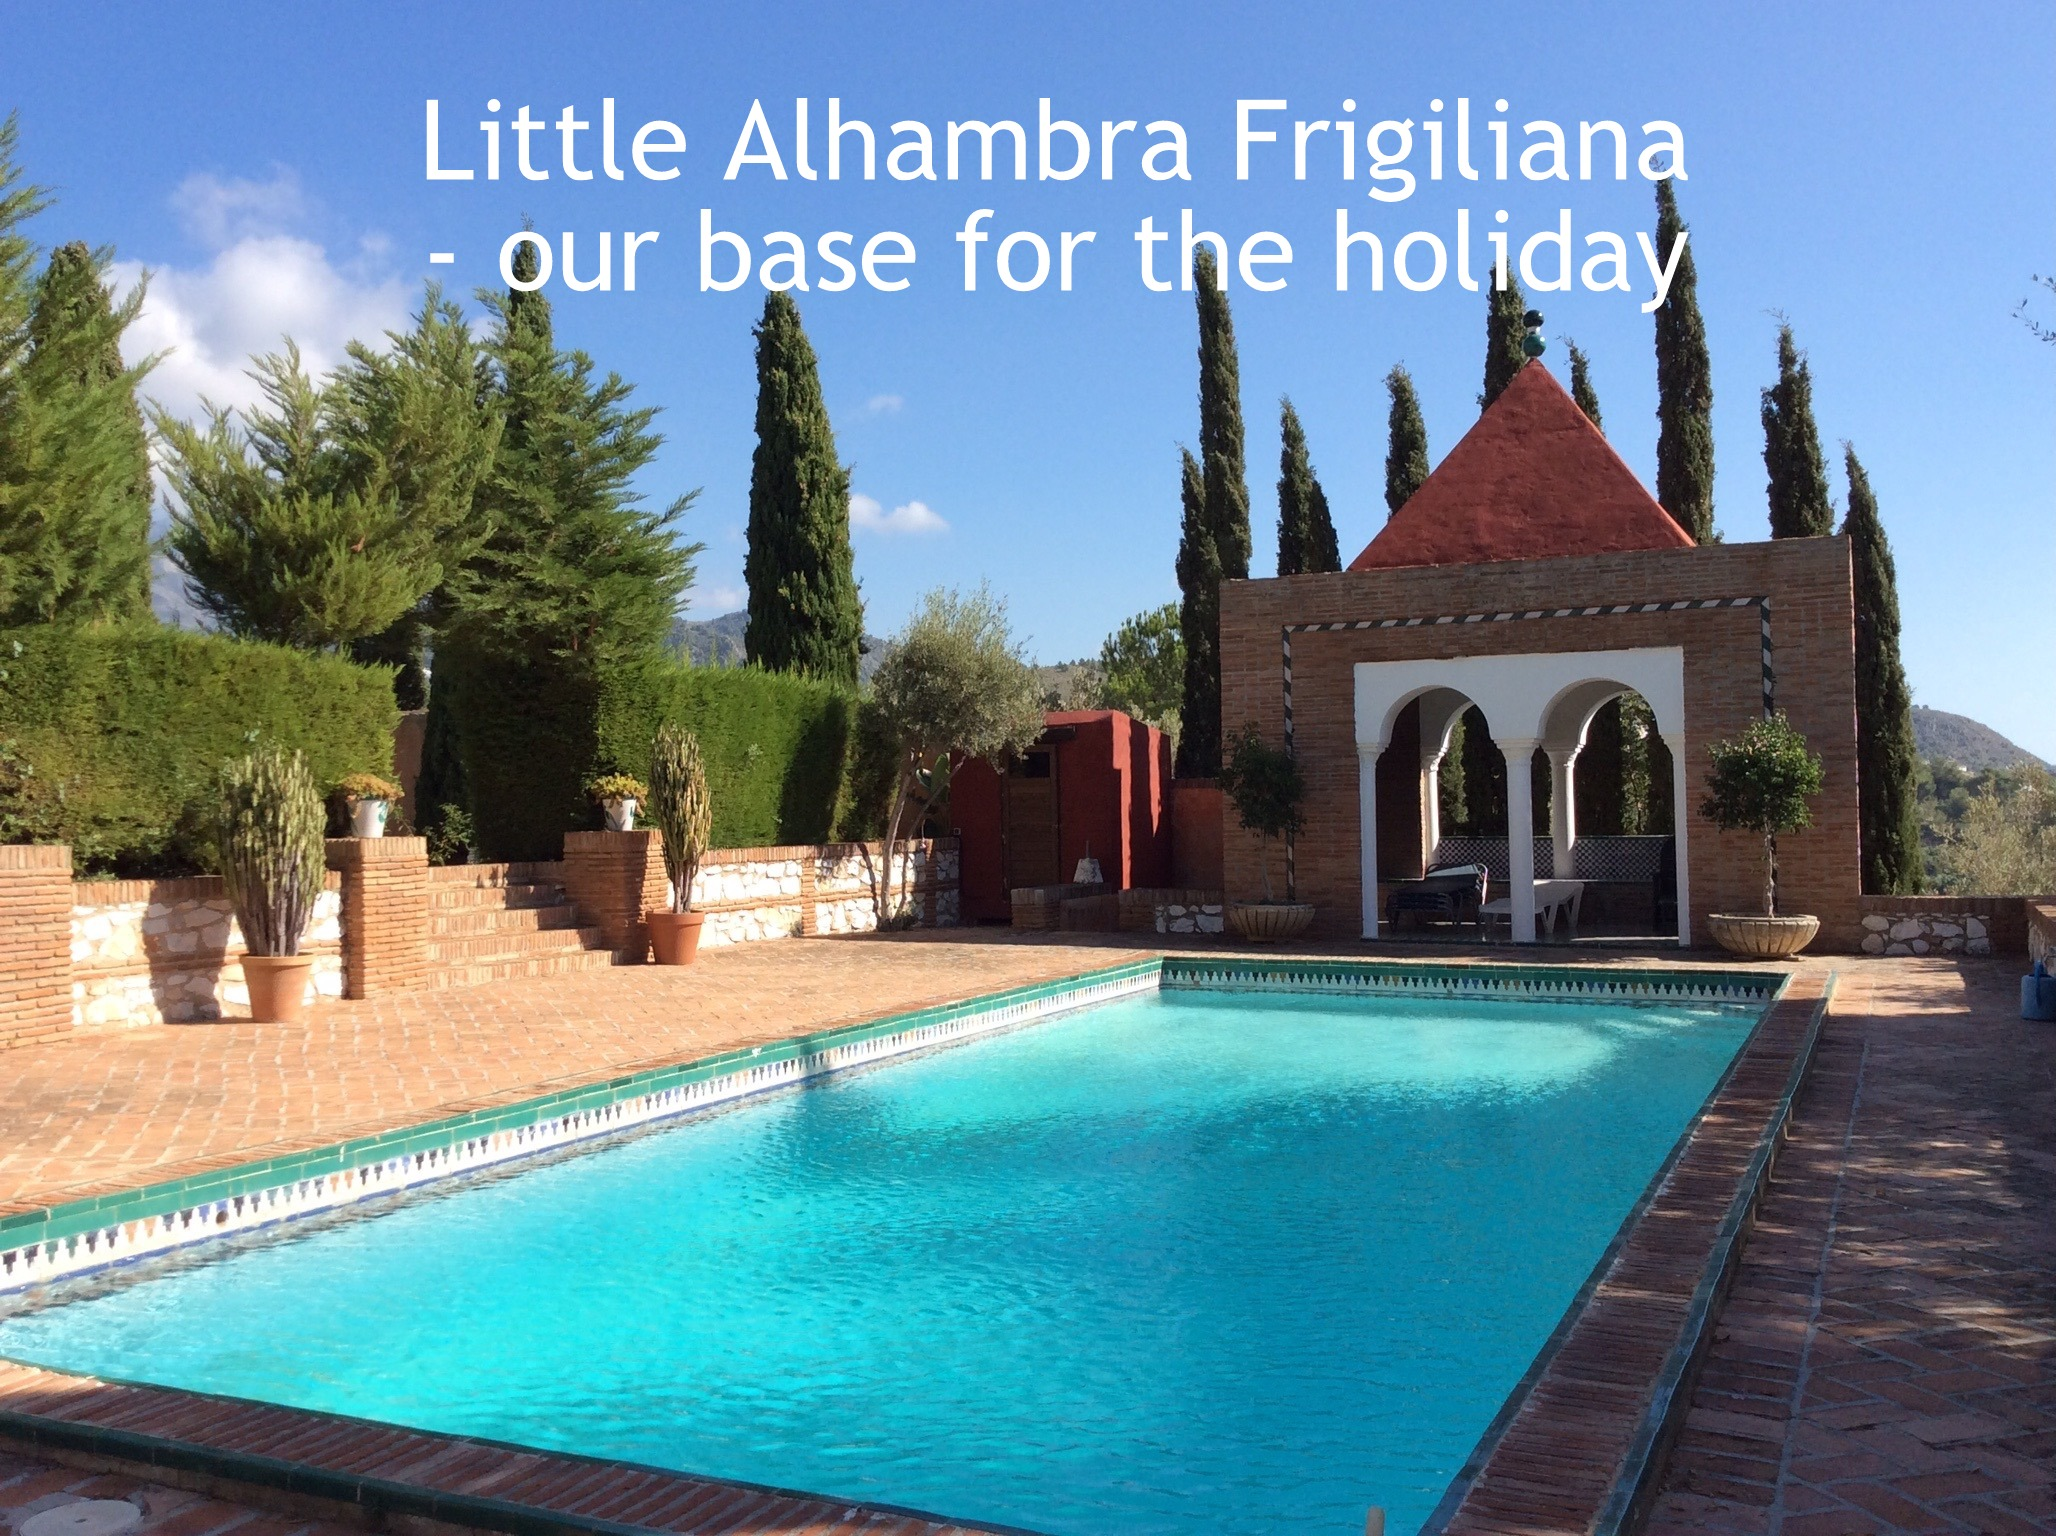 Little Alhambra Frigiliana